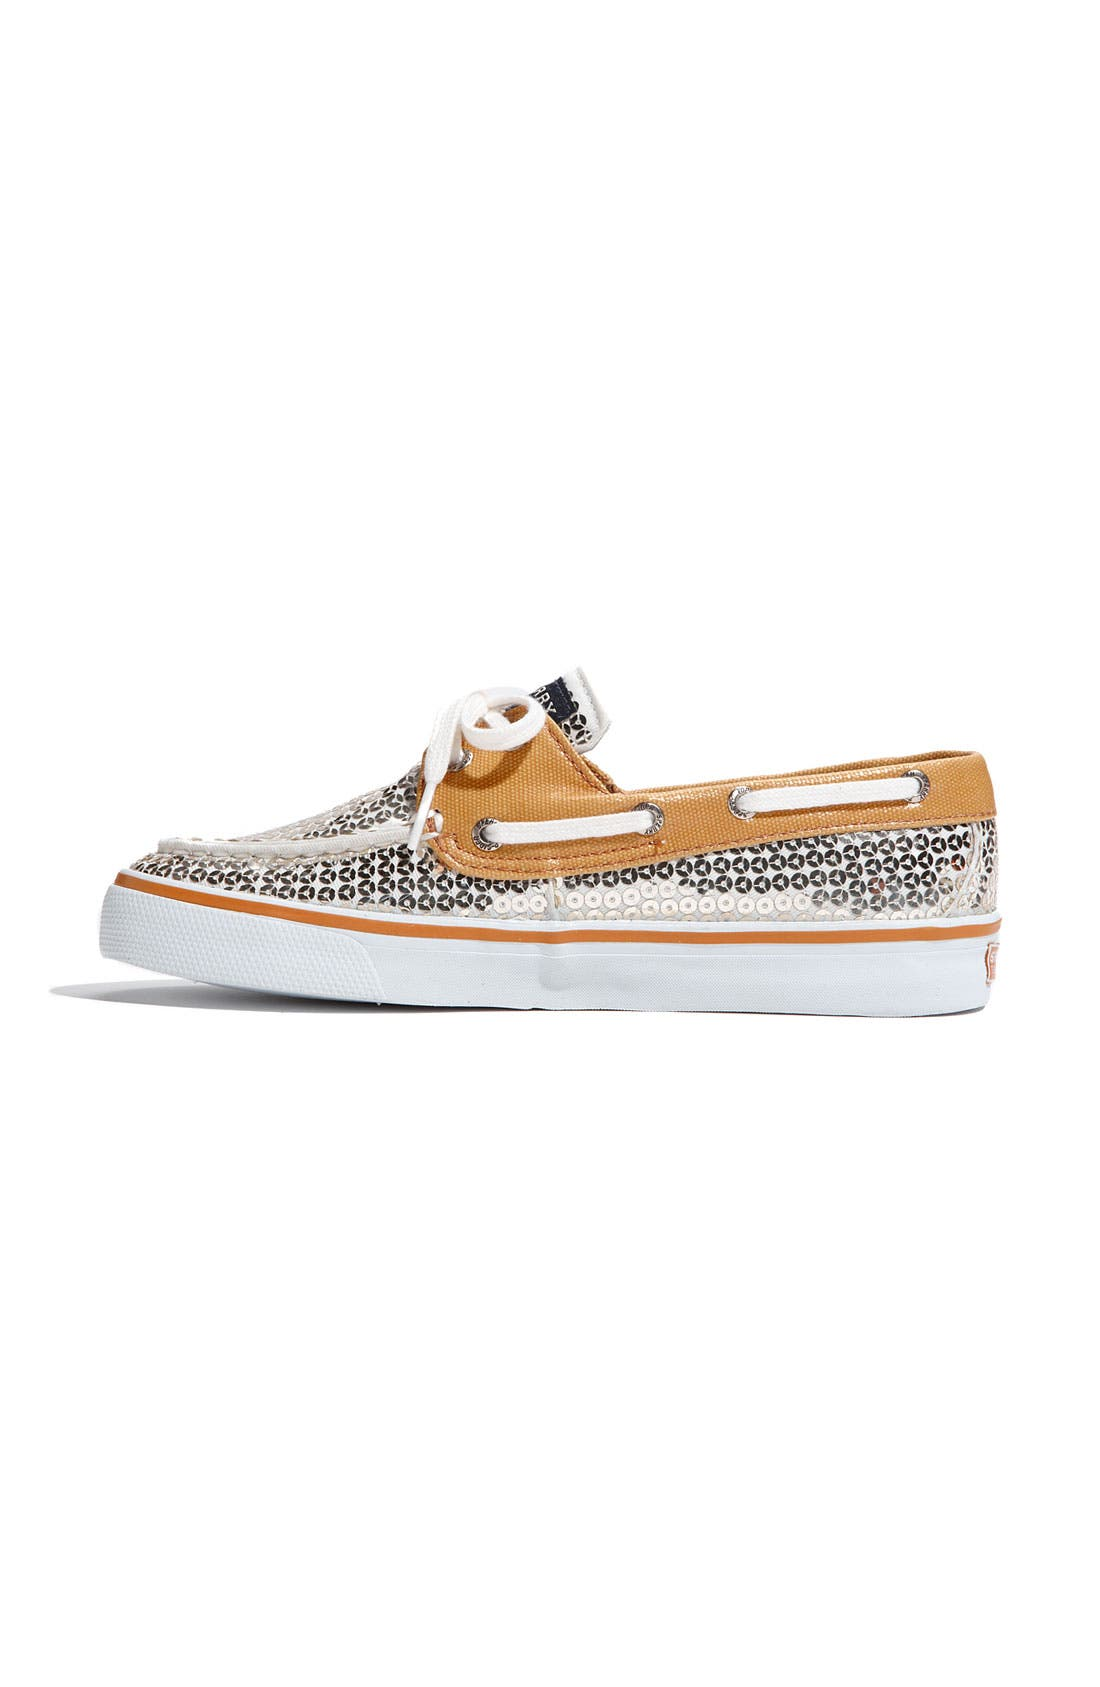 Top-Sider<sup>®</sup> 'Bahama' Sequined Boat Shoe,                             Alternate thumbnail 126, color,